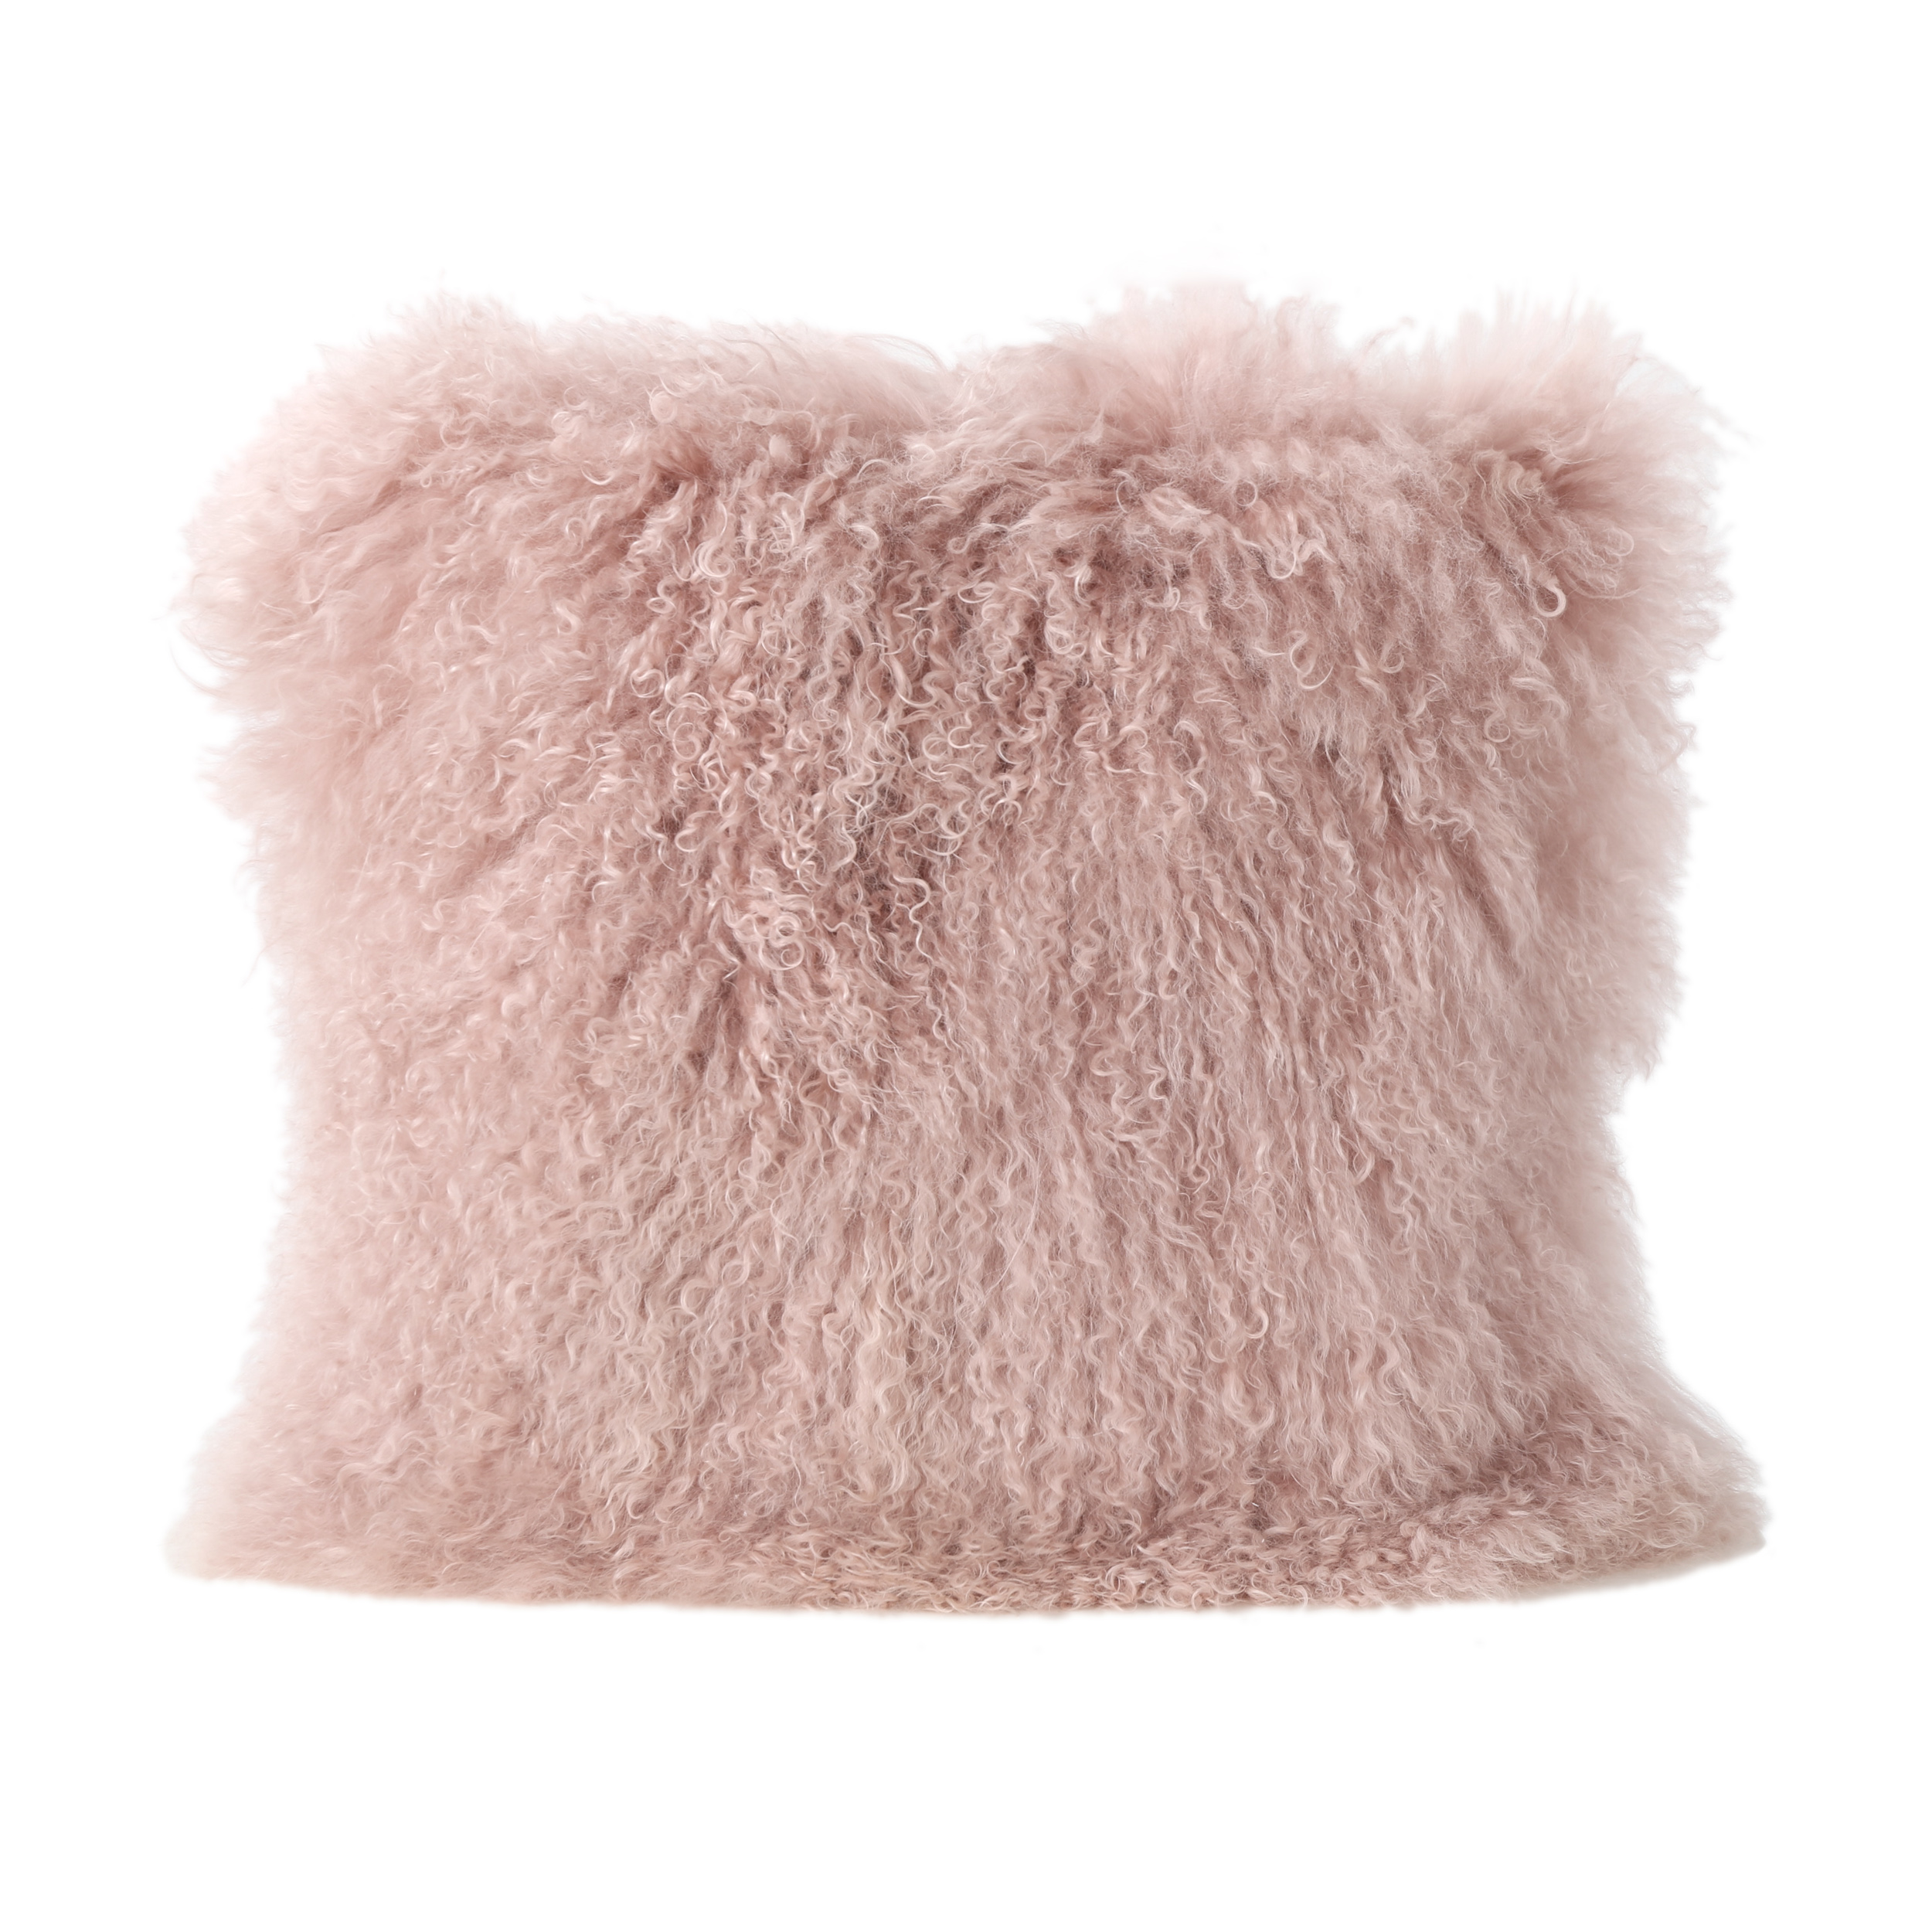 Marybelle Shaggy Lamb Fur 16 x 16 Square Pillow, Rose